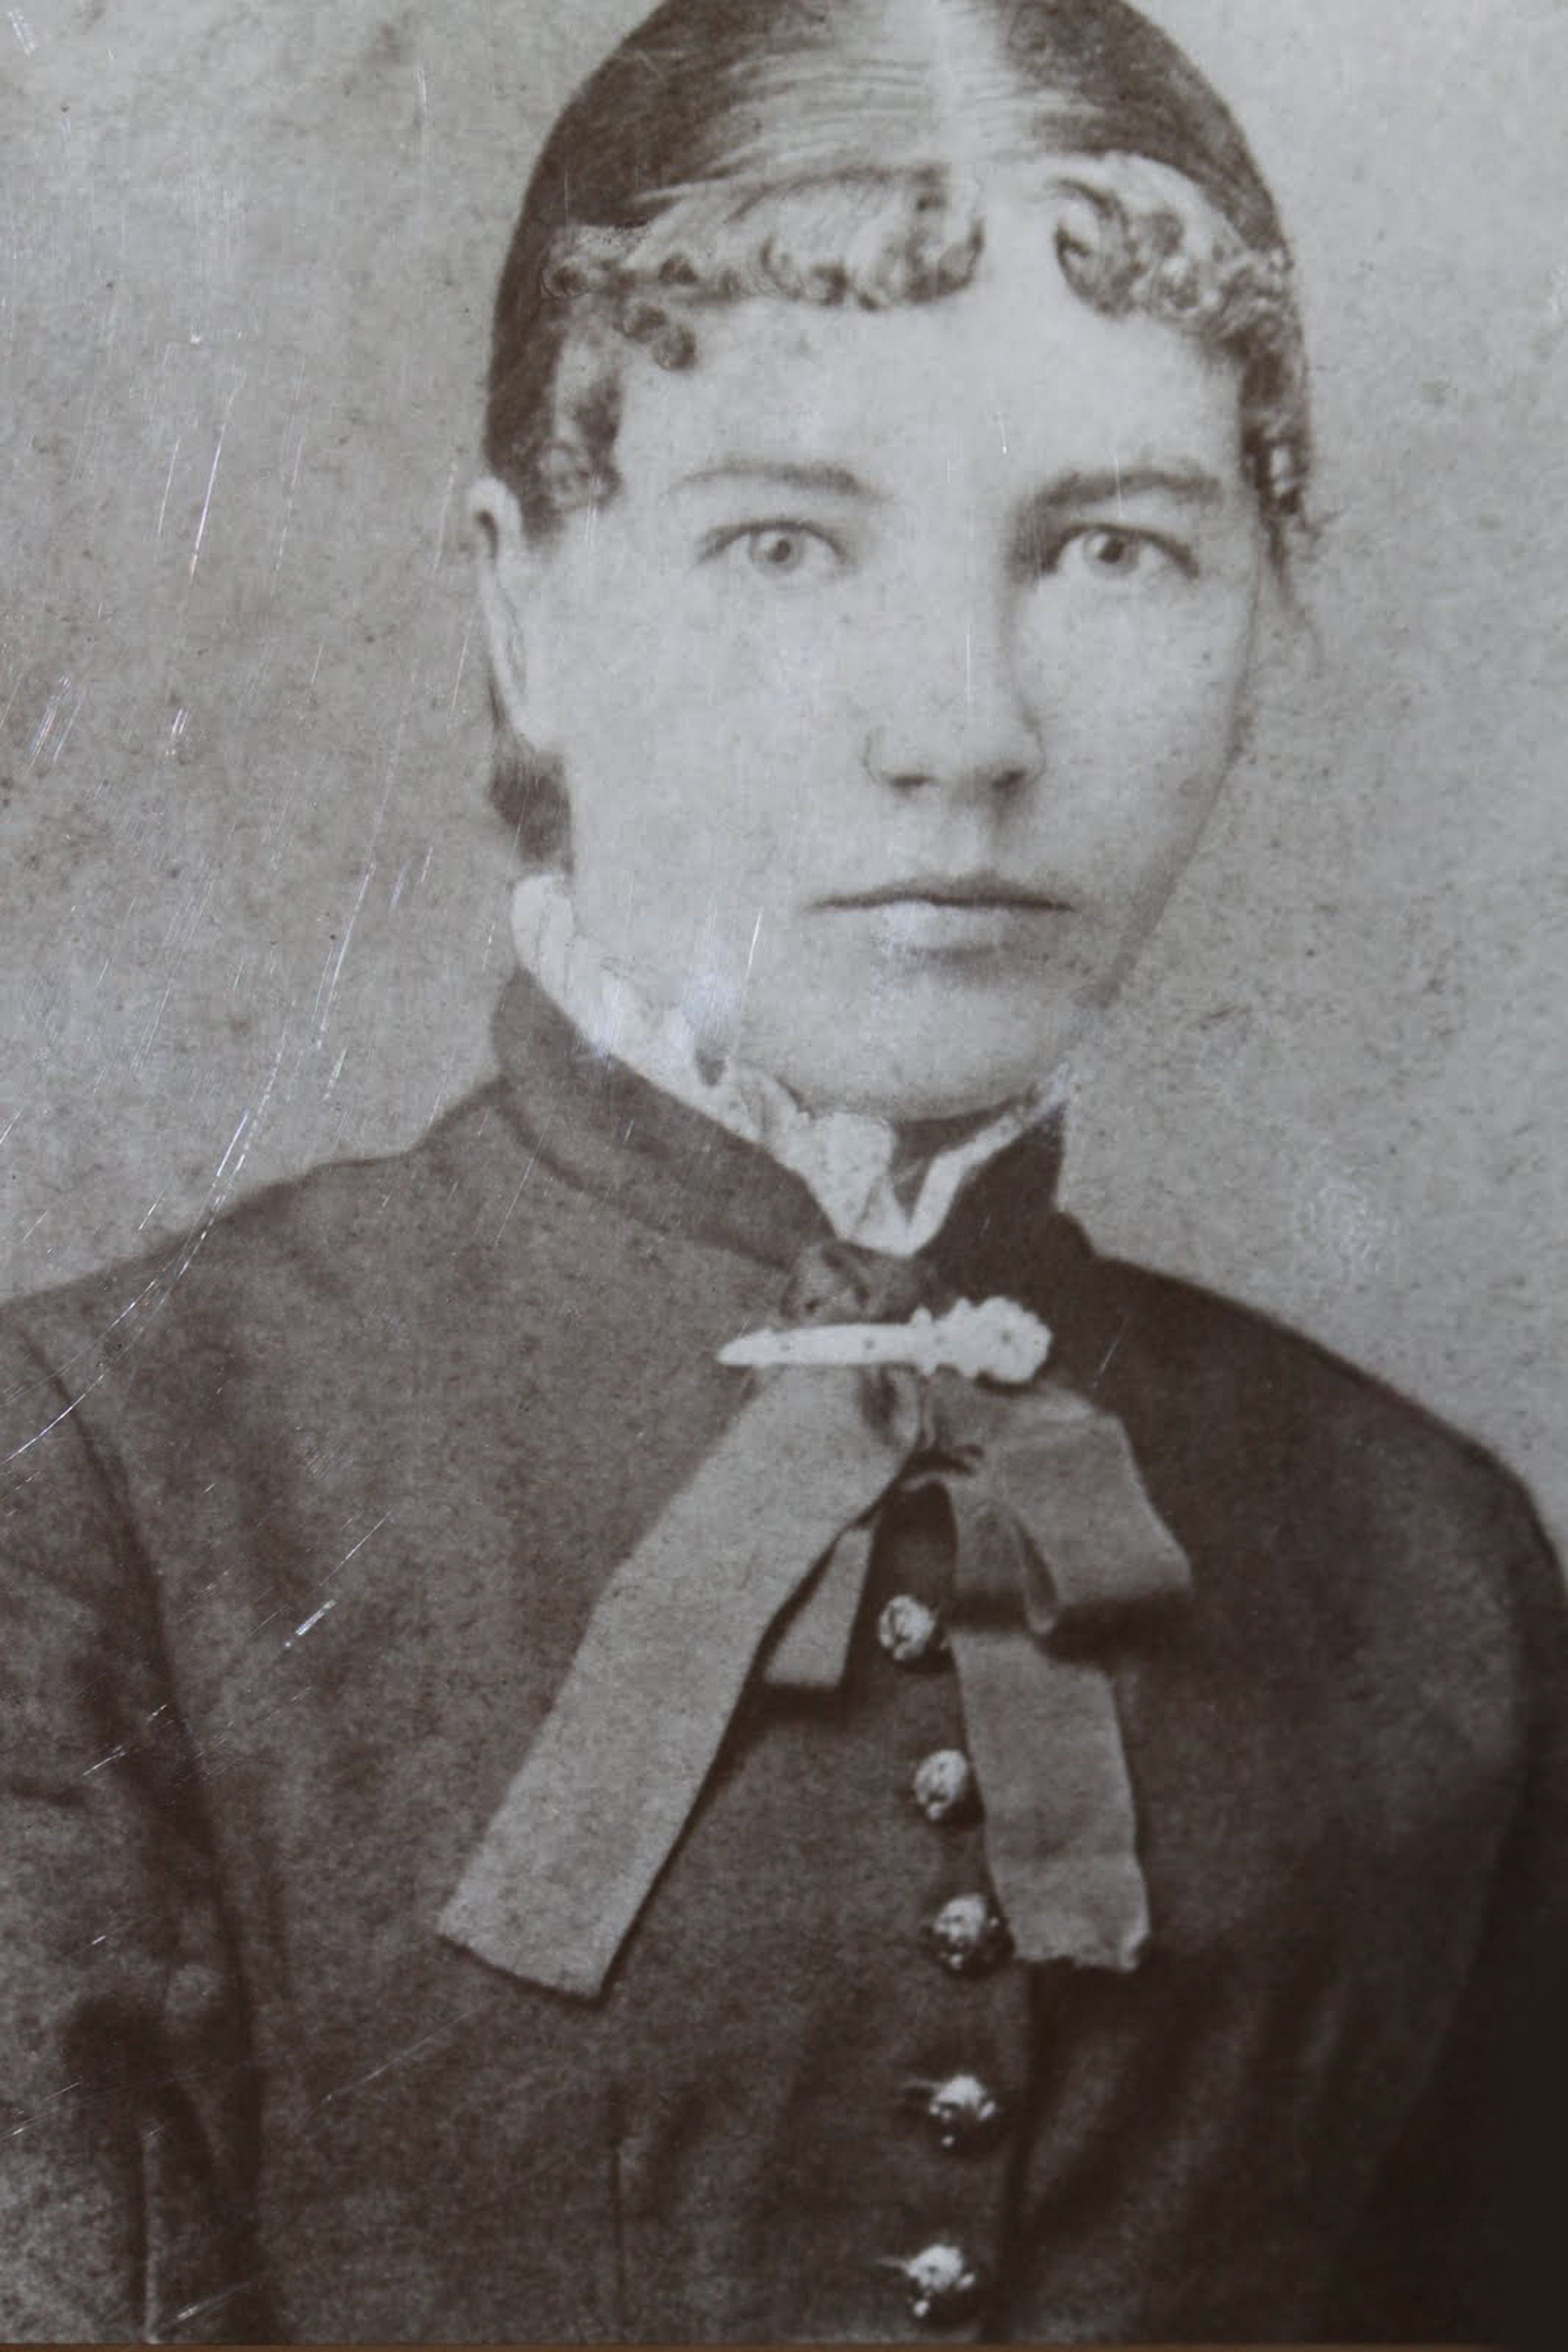 Laura Ingalls Wilder (1867-1957) as schoolteacher, 1887. Found in the collection of Laura Ingalls Wilder Museum, Walnut Grove. Artist :  Anonymous. (Photo by Fine Art Images/Heritage Images/Getty Images)